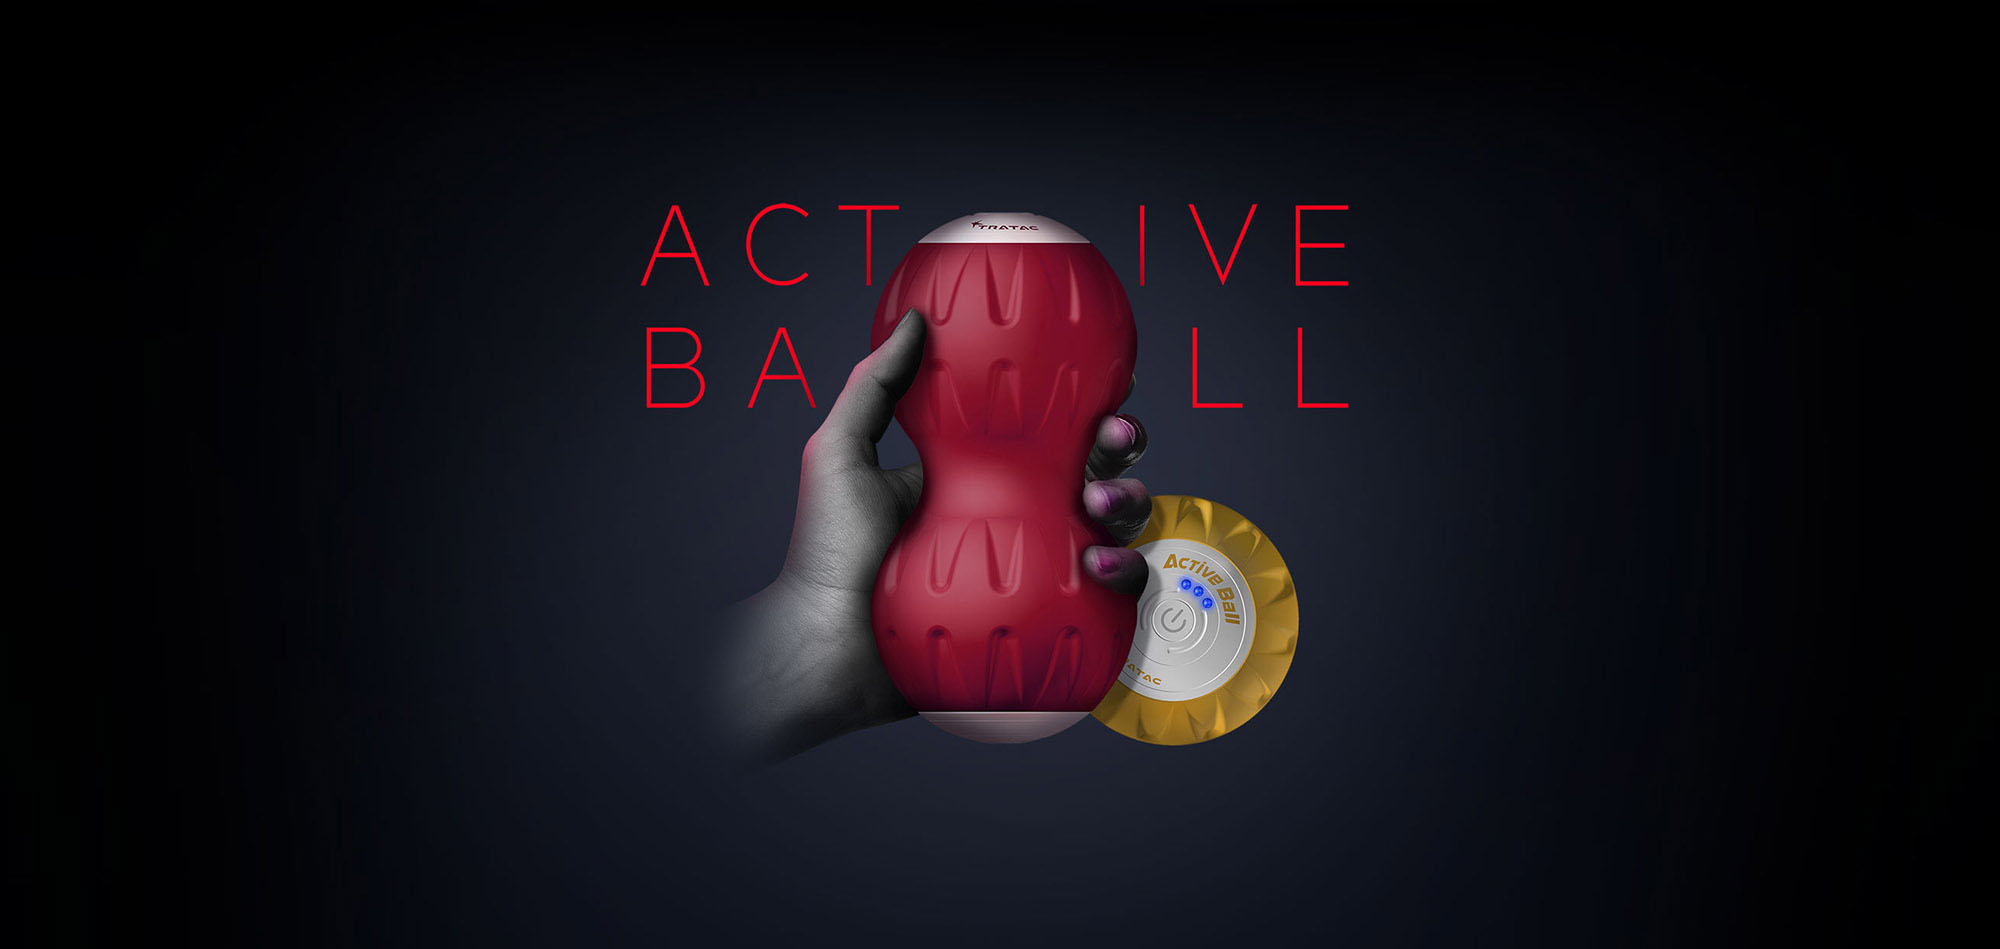 tratac-foam-roller-active-ball